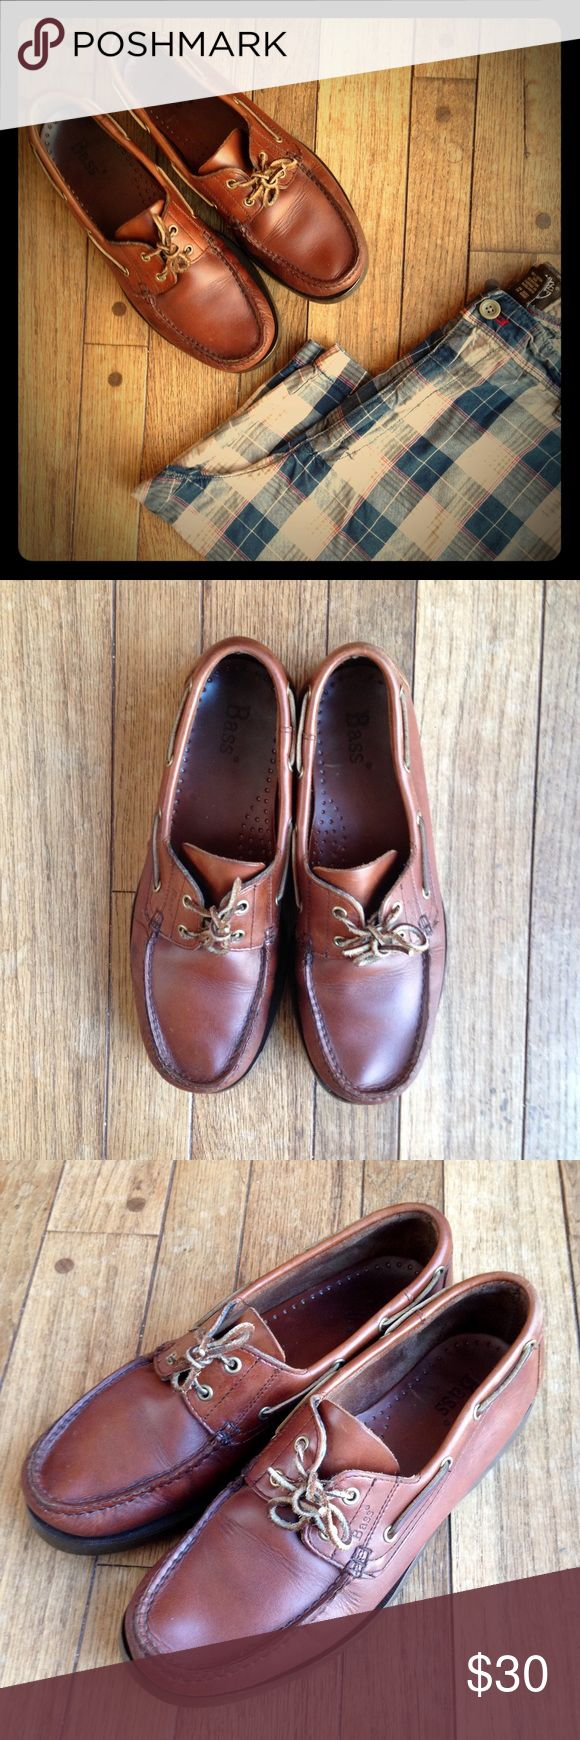 "Bass ""Seafarer"" brown leather boat shoes Great condition!  Very gently used. Leather looks and smells great!  Soles show no wear. Leather laces. A classic pair of shoes! Bass Shoes Boat Shoes"